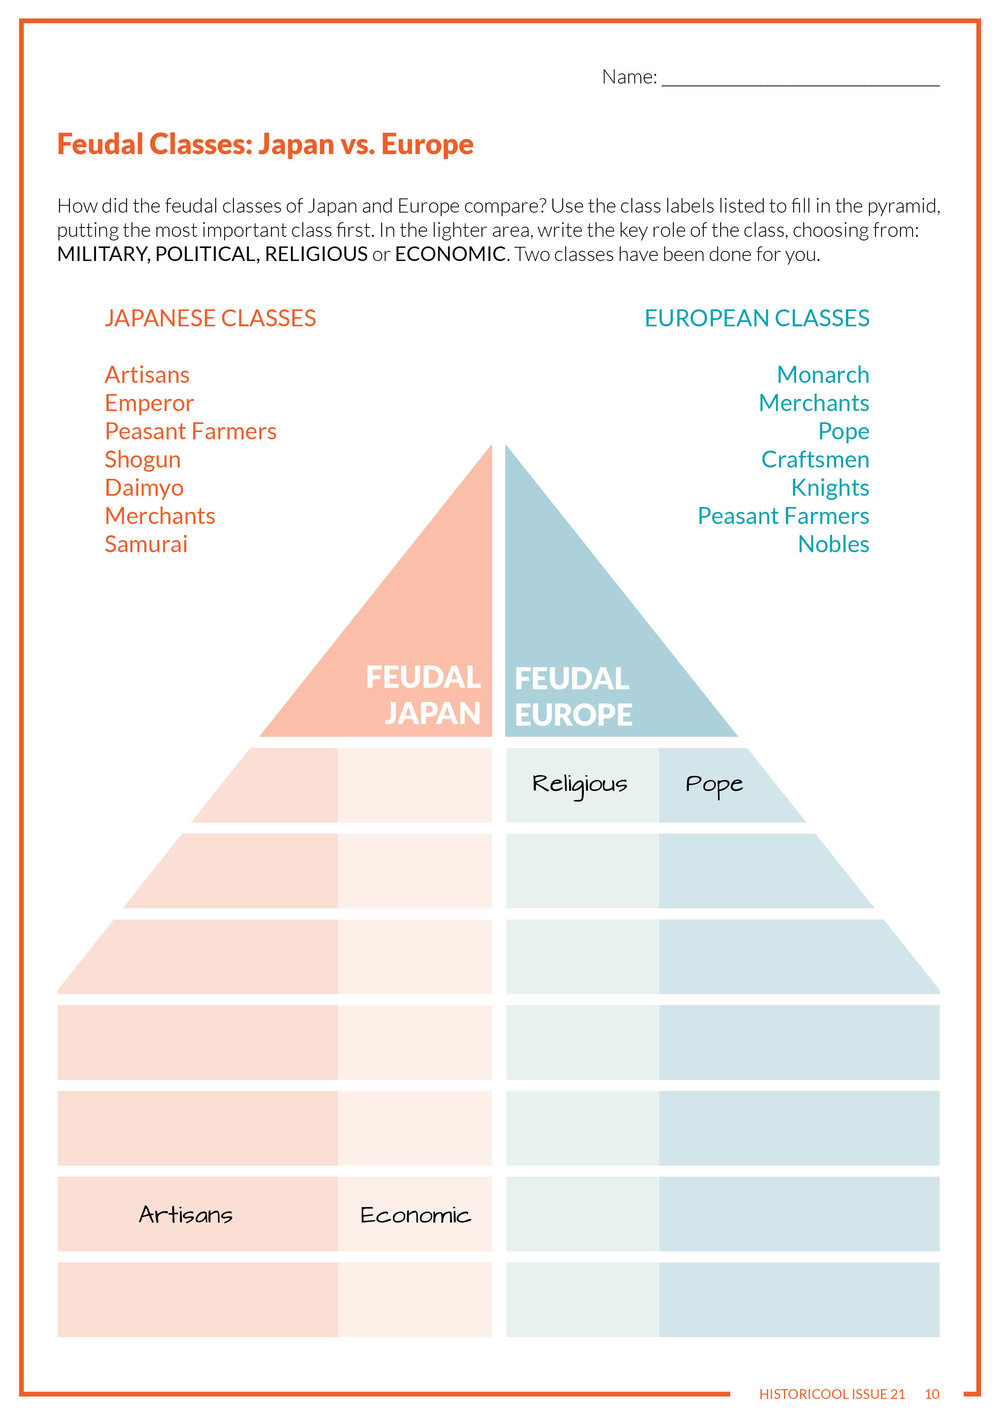 a comparison of feudalism in europe and japan Comparing feudal systems: japan and europe in the feudal system, women were often just romantic figures and were considered to be fragile and inferior beings.